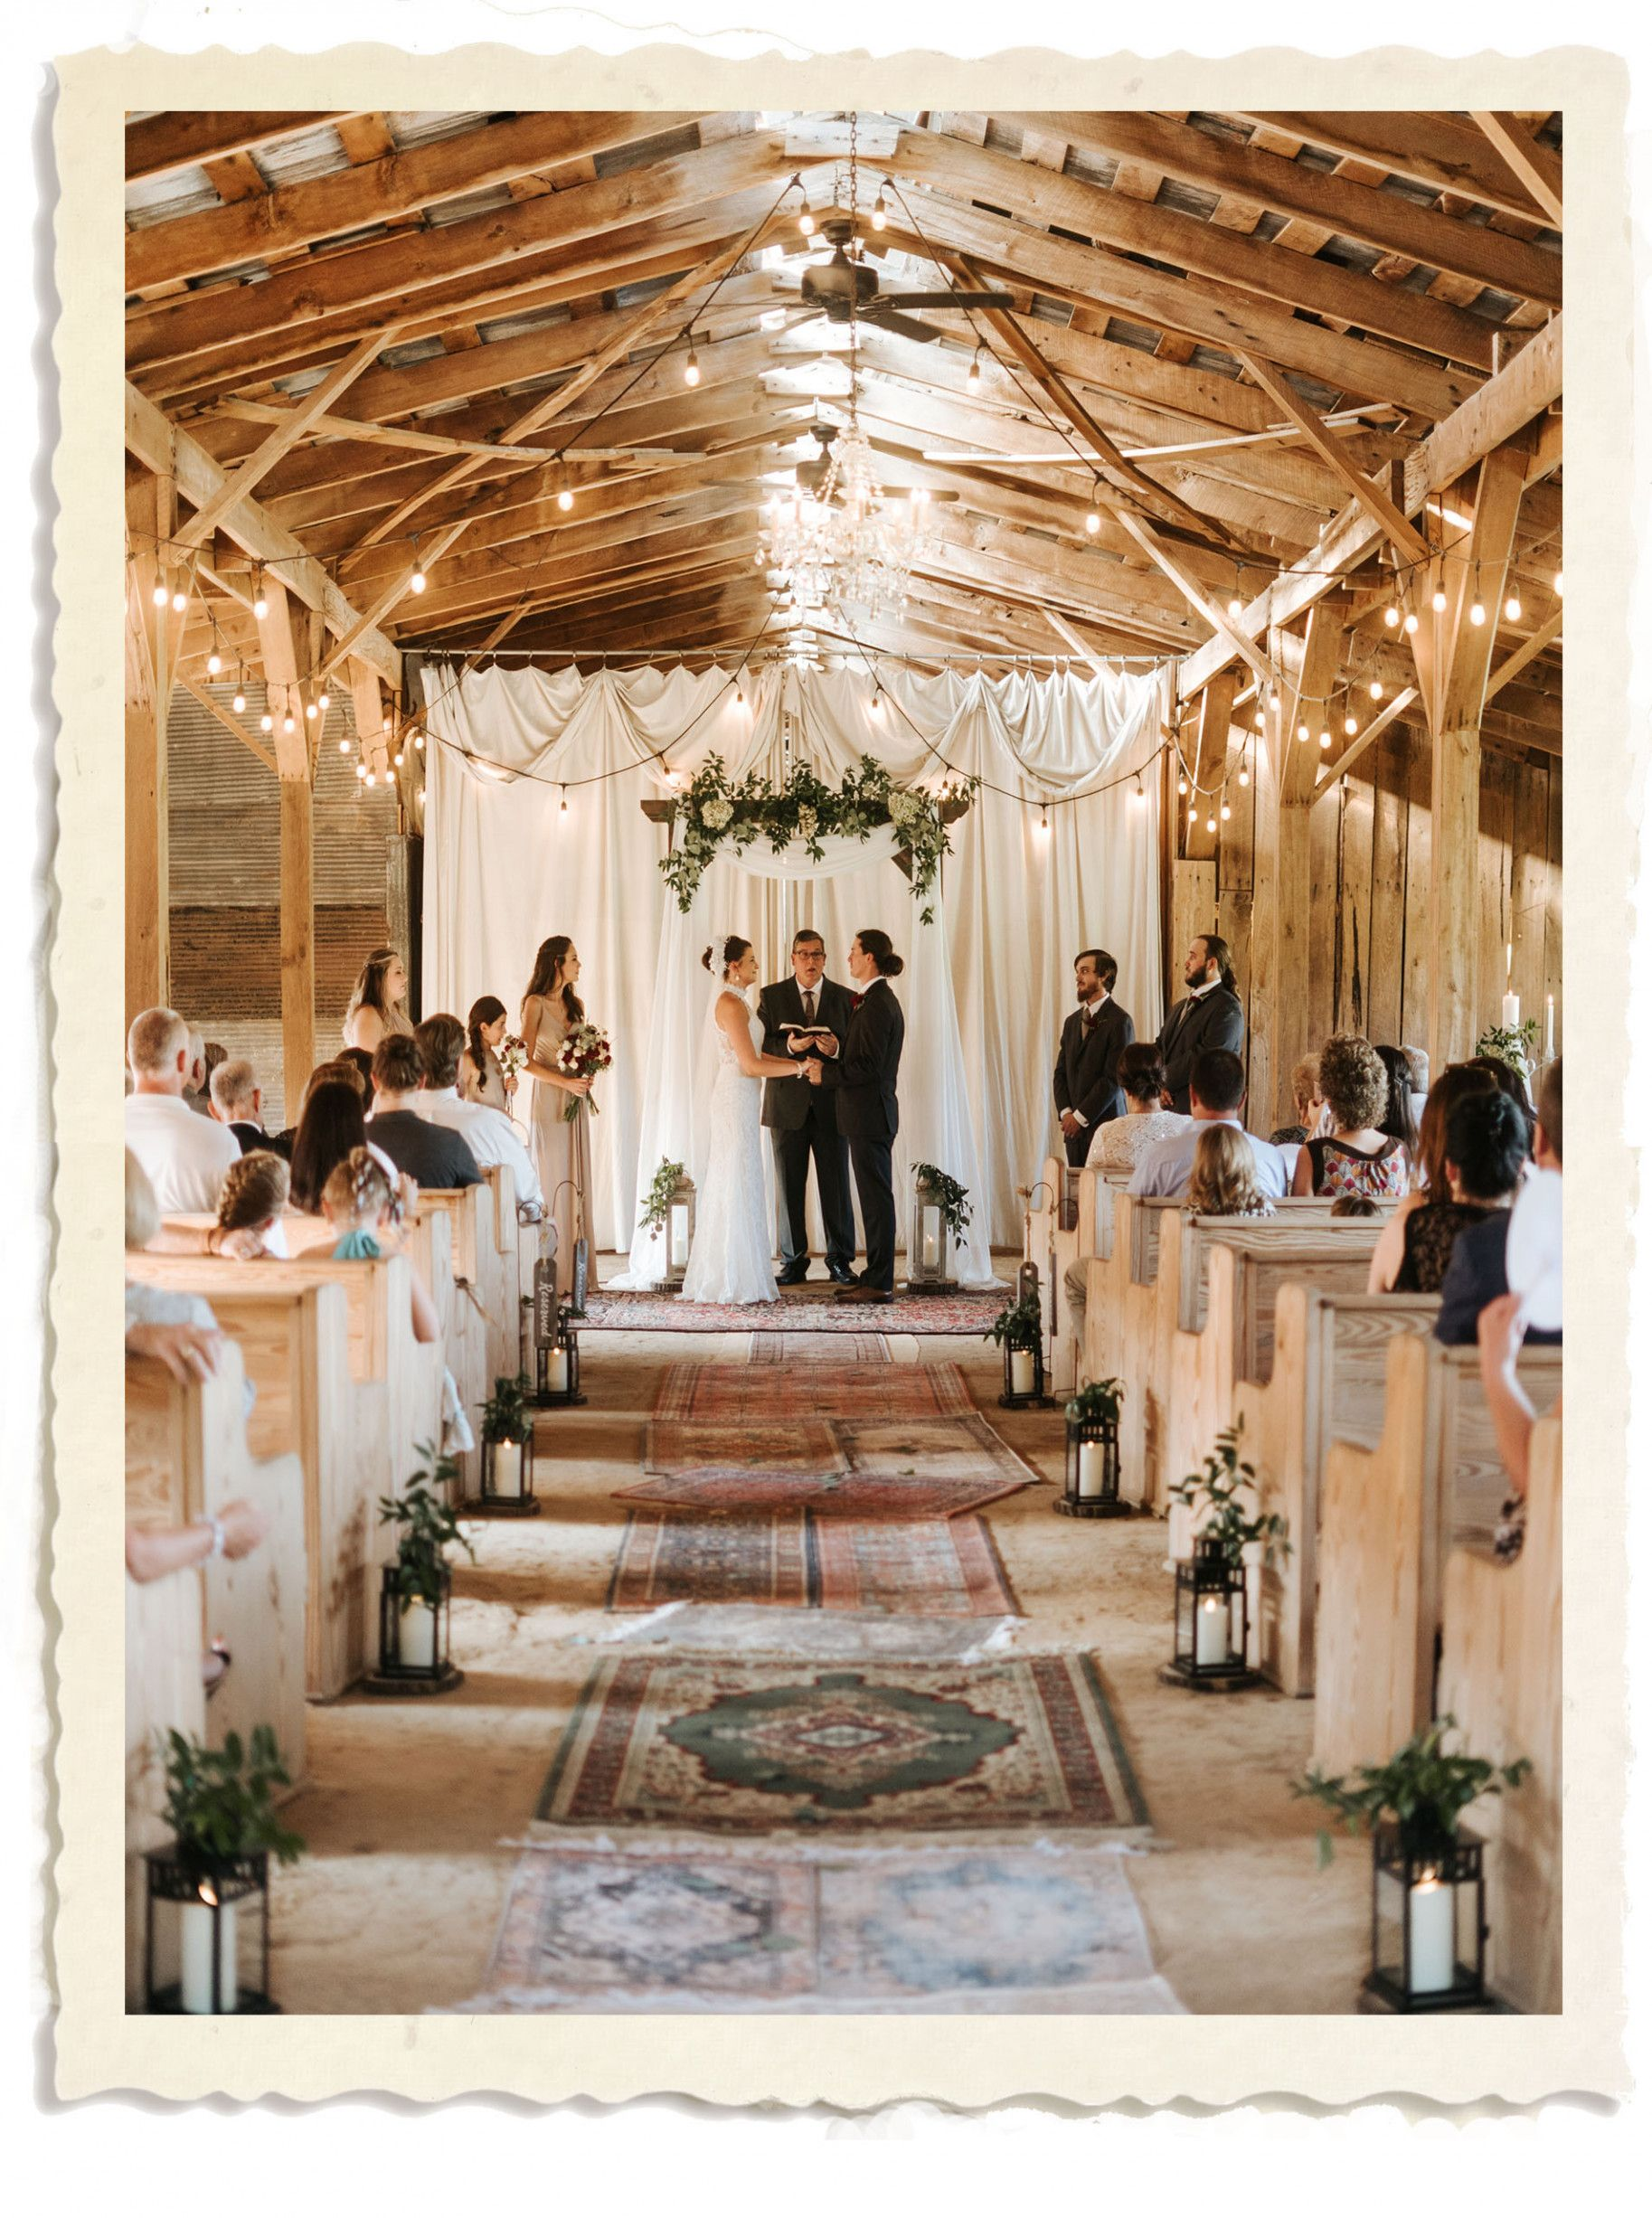 Barn Wedding Venues Alabama Will Be A Thing Of The Past